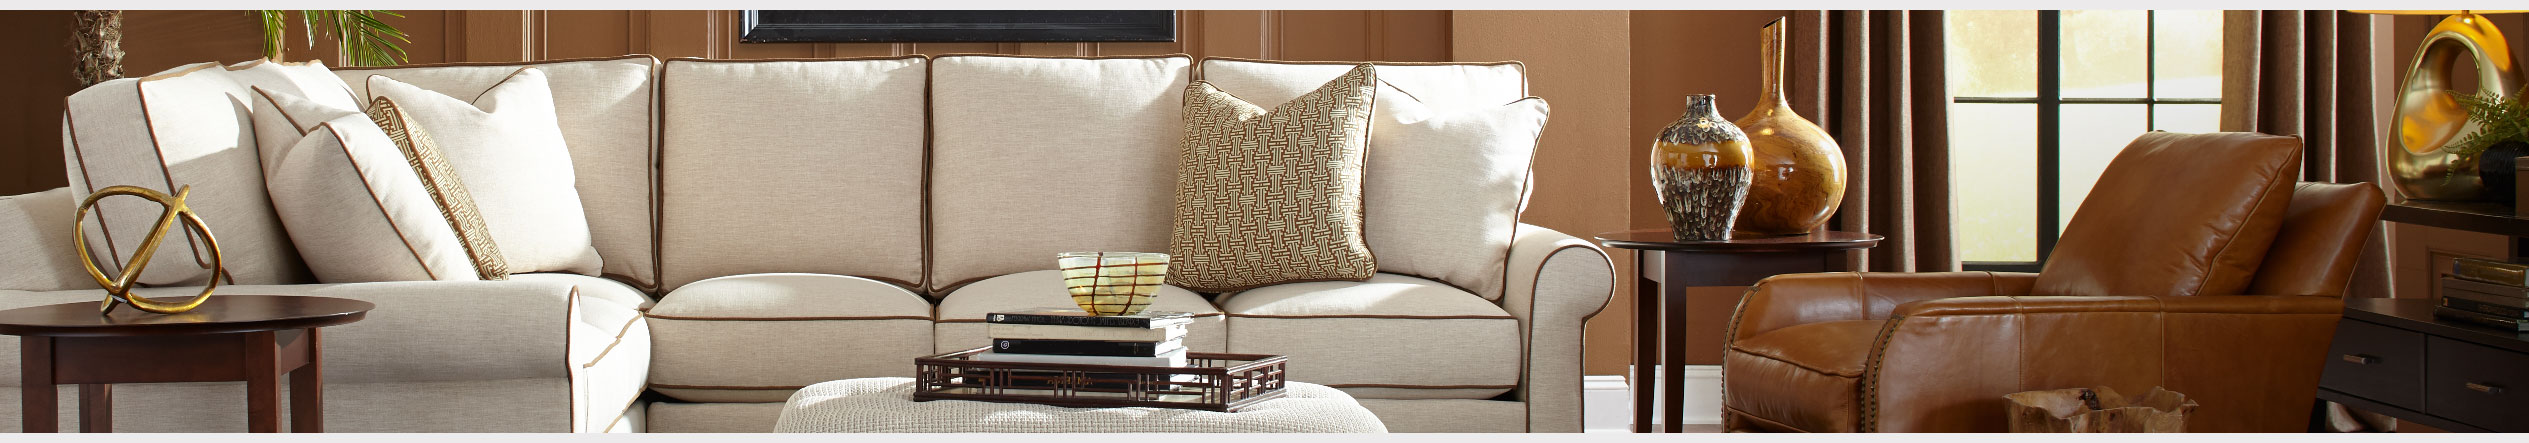 Room Planner At Jordanu0027s Furniture Stores In CT, MA, NH, ...